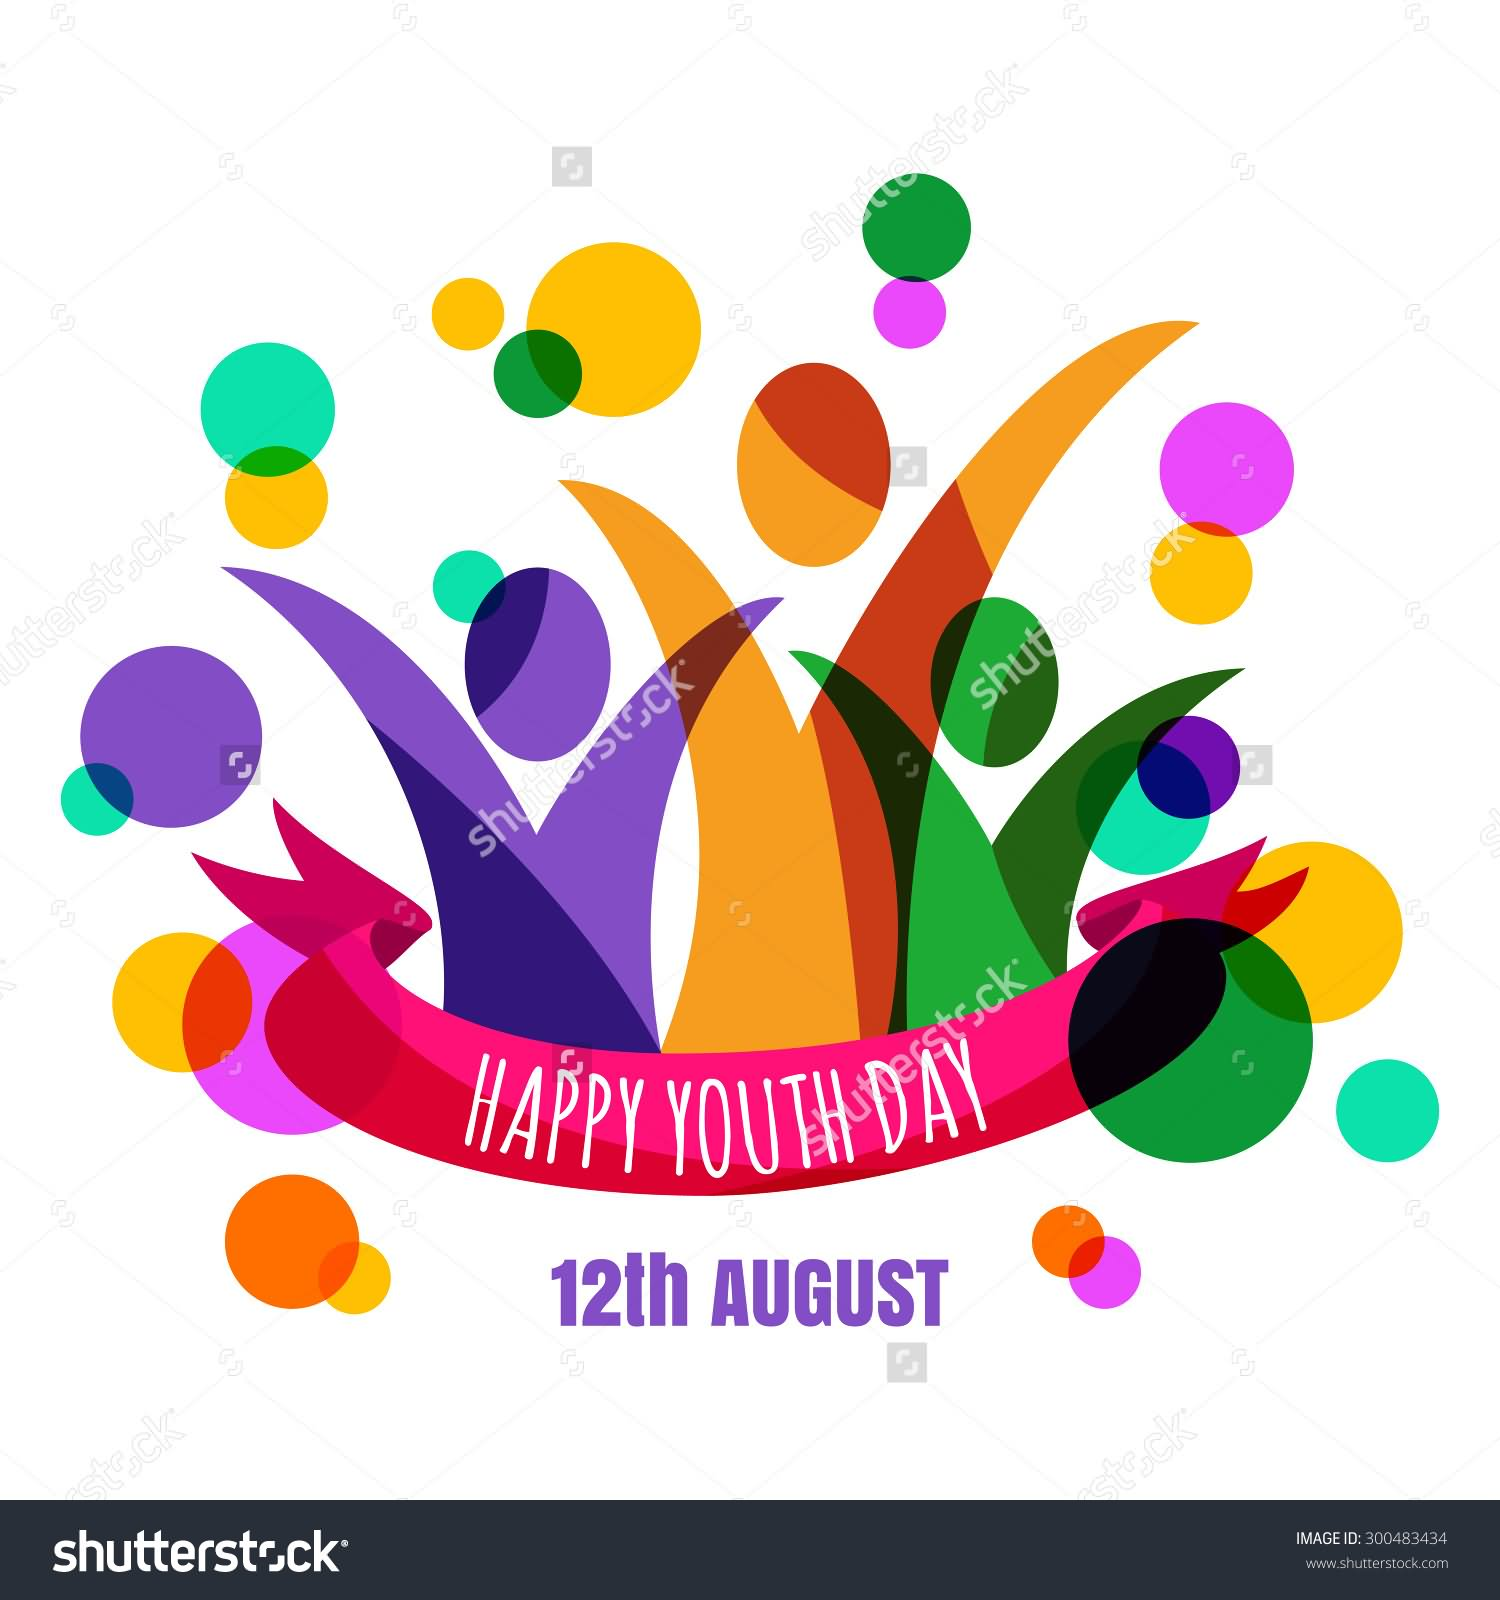 youth day Youth day is a holiday dedicated to the youths of a country it is observed by 18 countries, on many different dates throughout the year the united nations agreed on the date of 12 august in 1999.